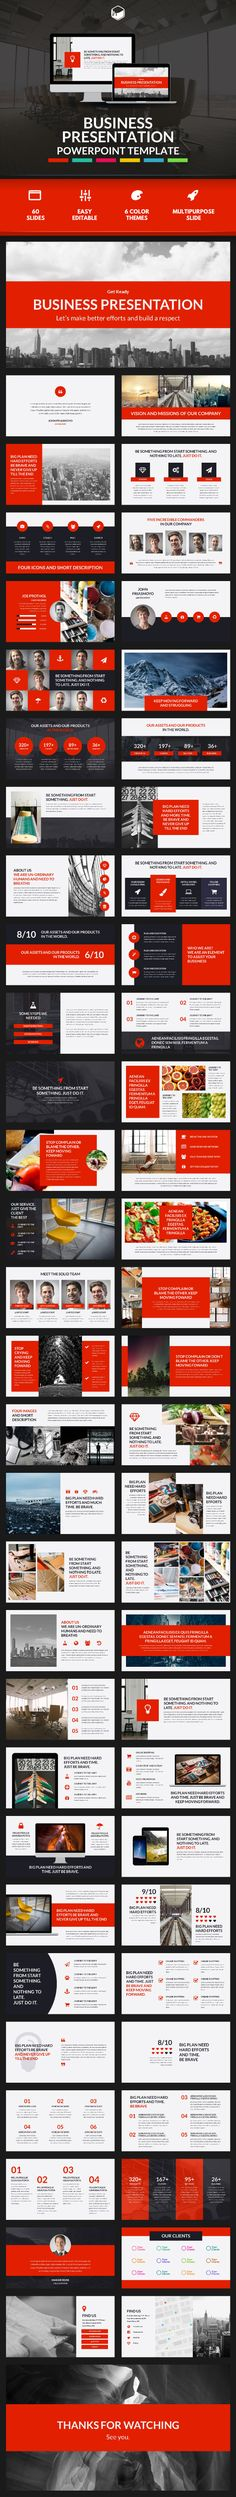 Business Presentation 2 - PowerPoint Template - Business PowerPoint Templates